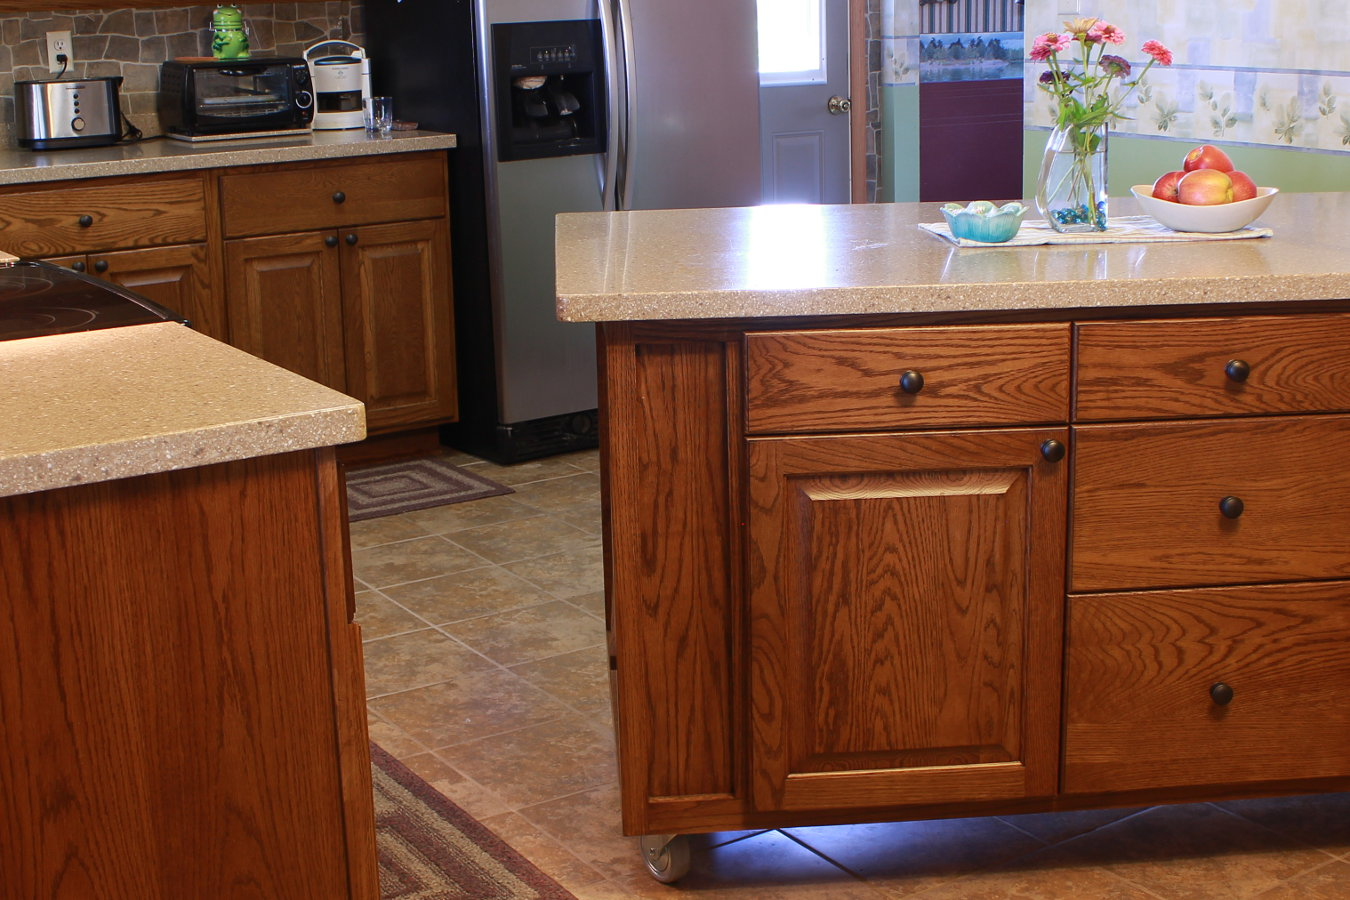 Love the back splash and counters on the oak cabinets ...